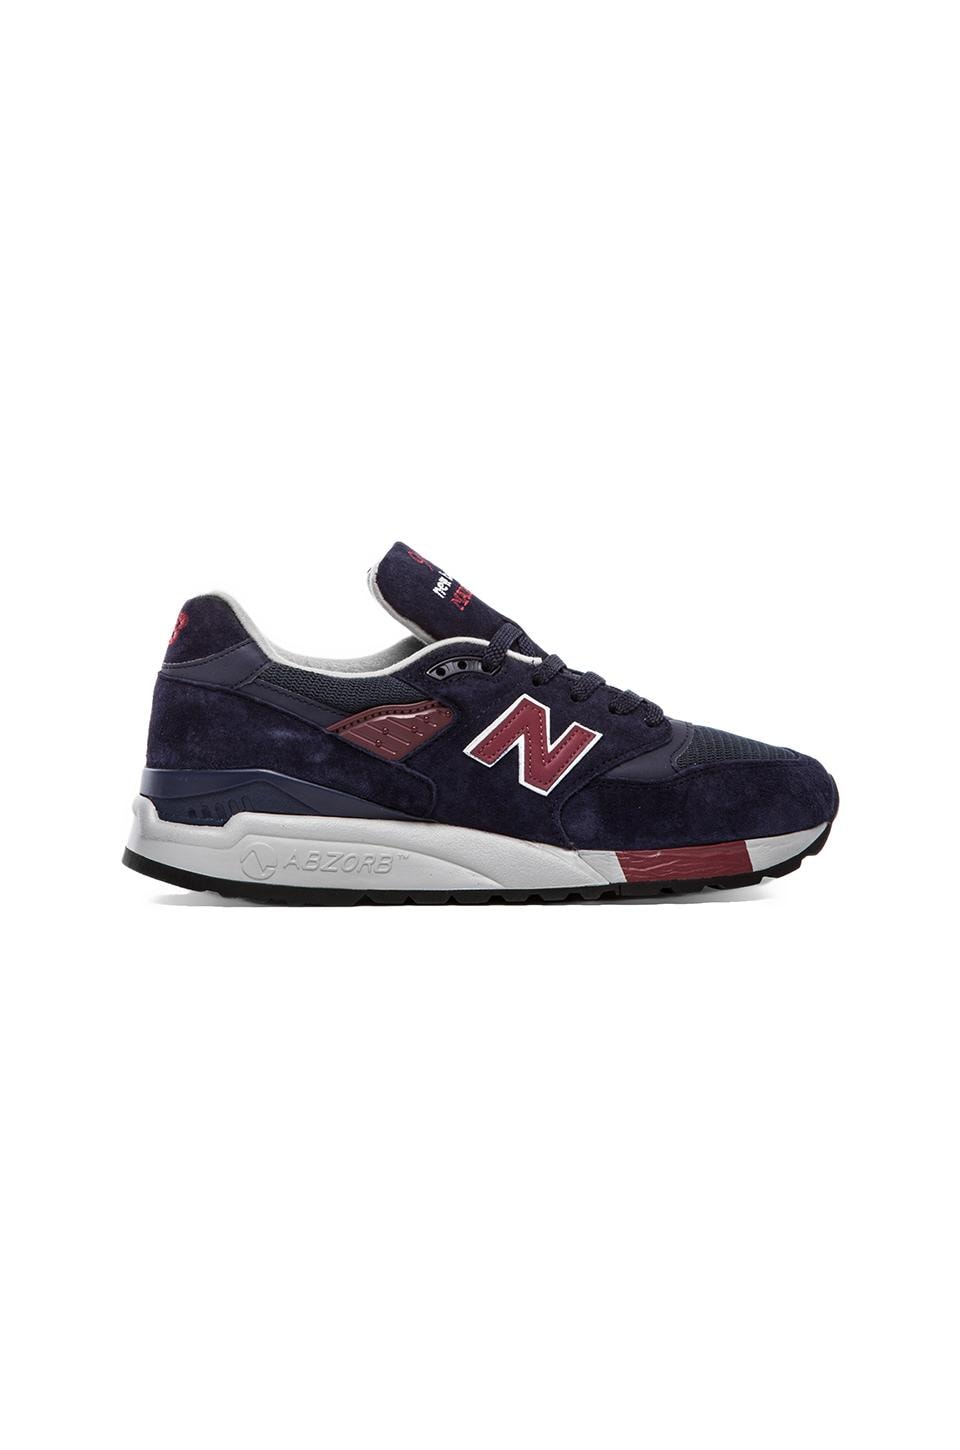 New Balance Made in the USA M998 in Navy